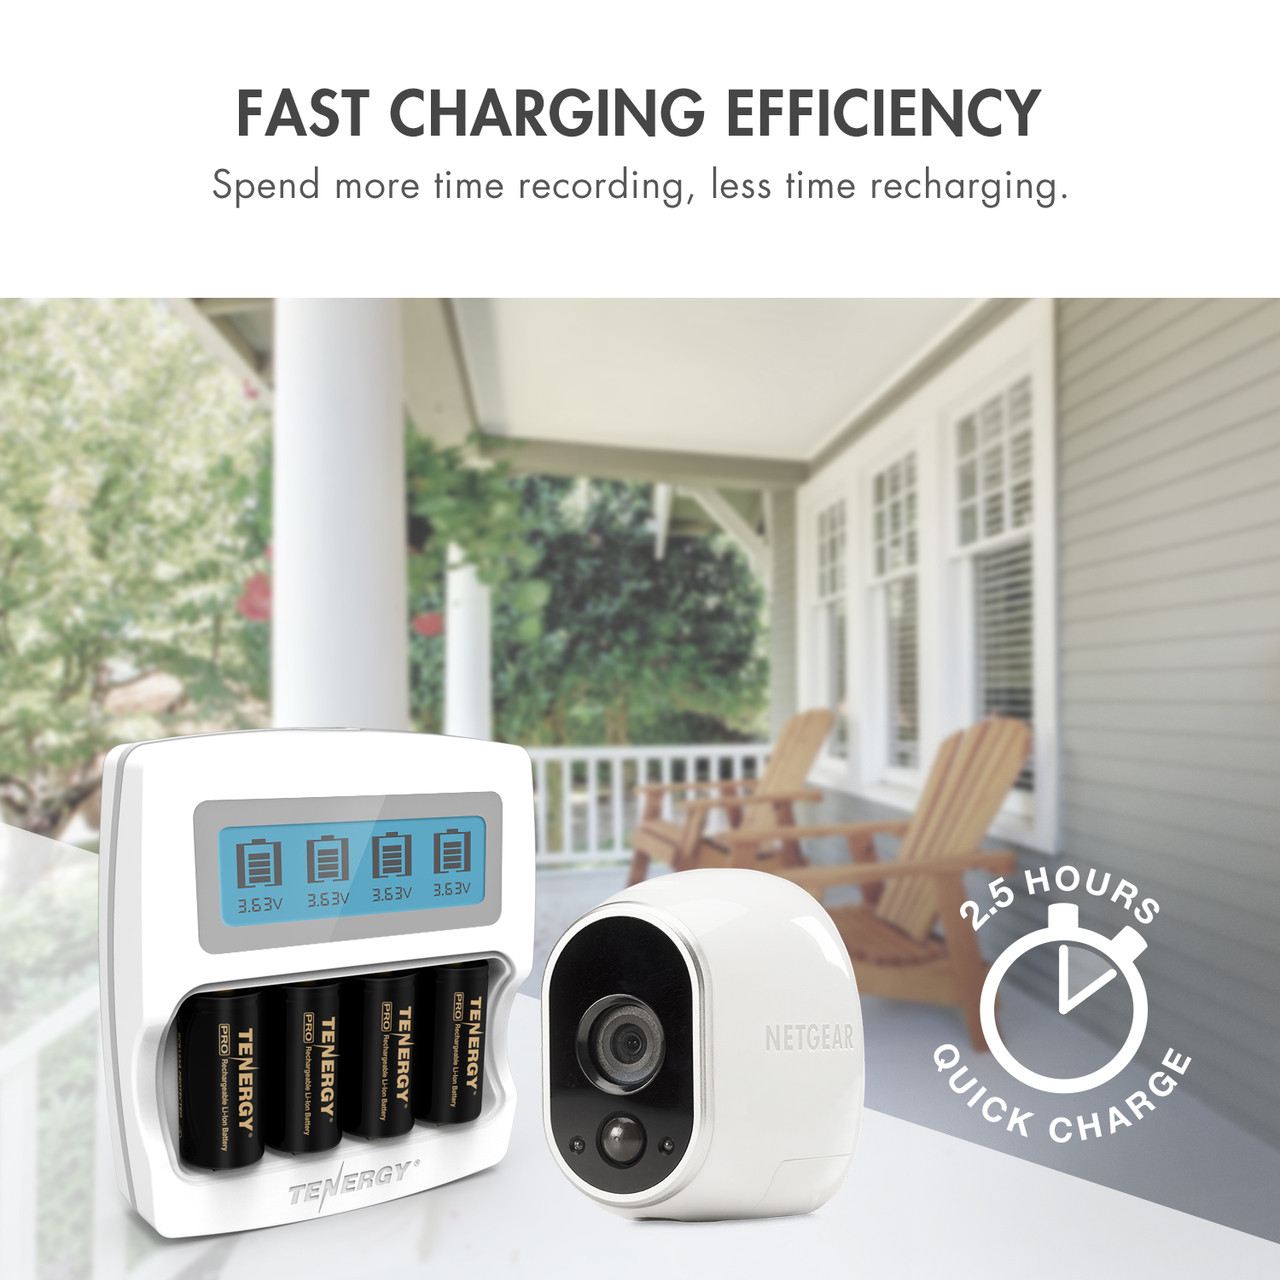 Premium Smart Fast Charger with LCD for Arlo Certified Tenergy 3.7V RCR123A Li-ion Rechargeable Batteries ONLY